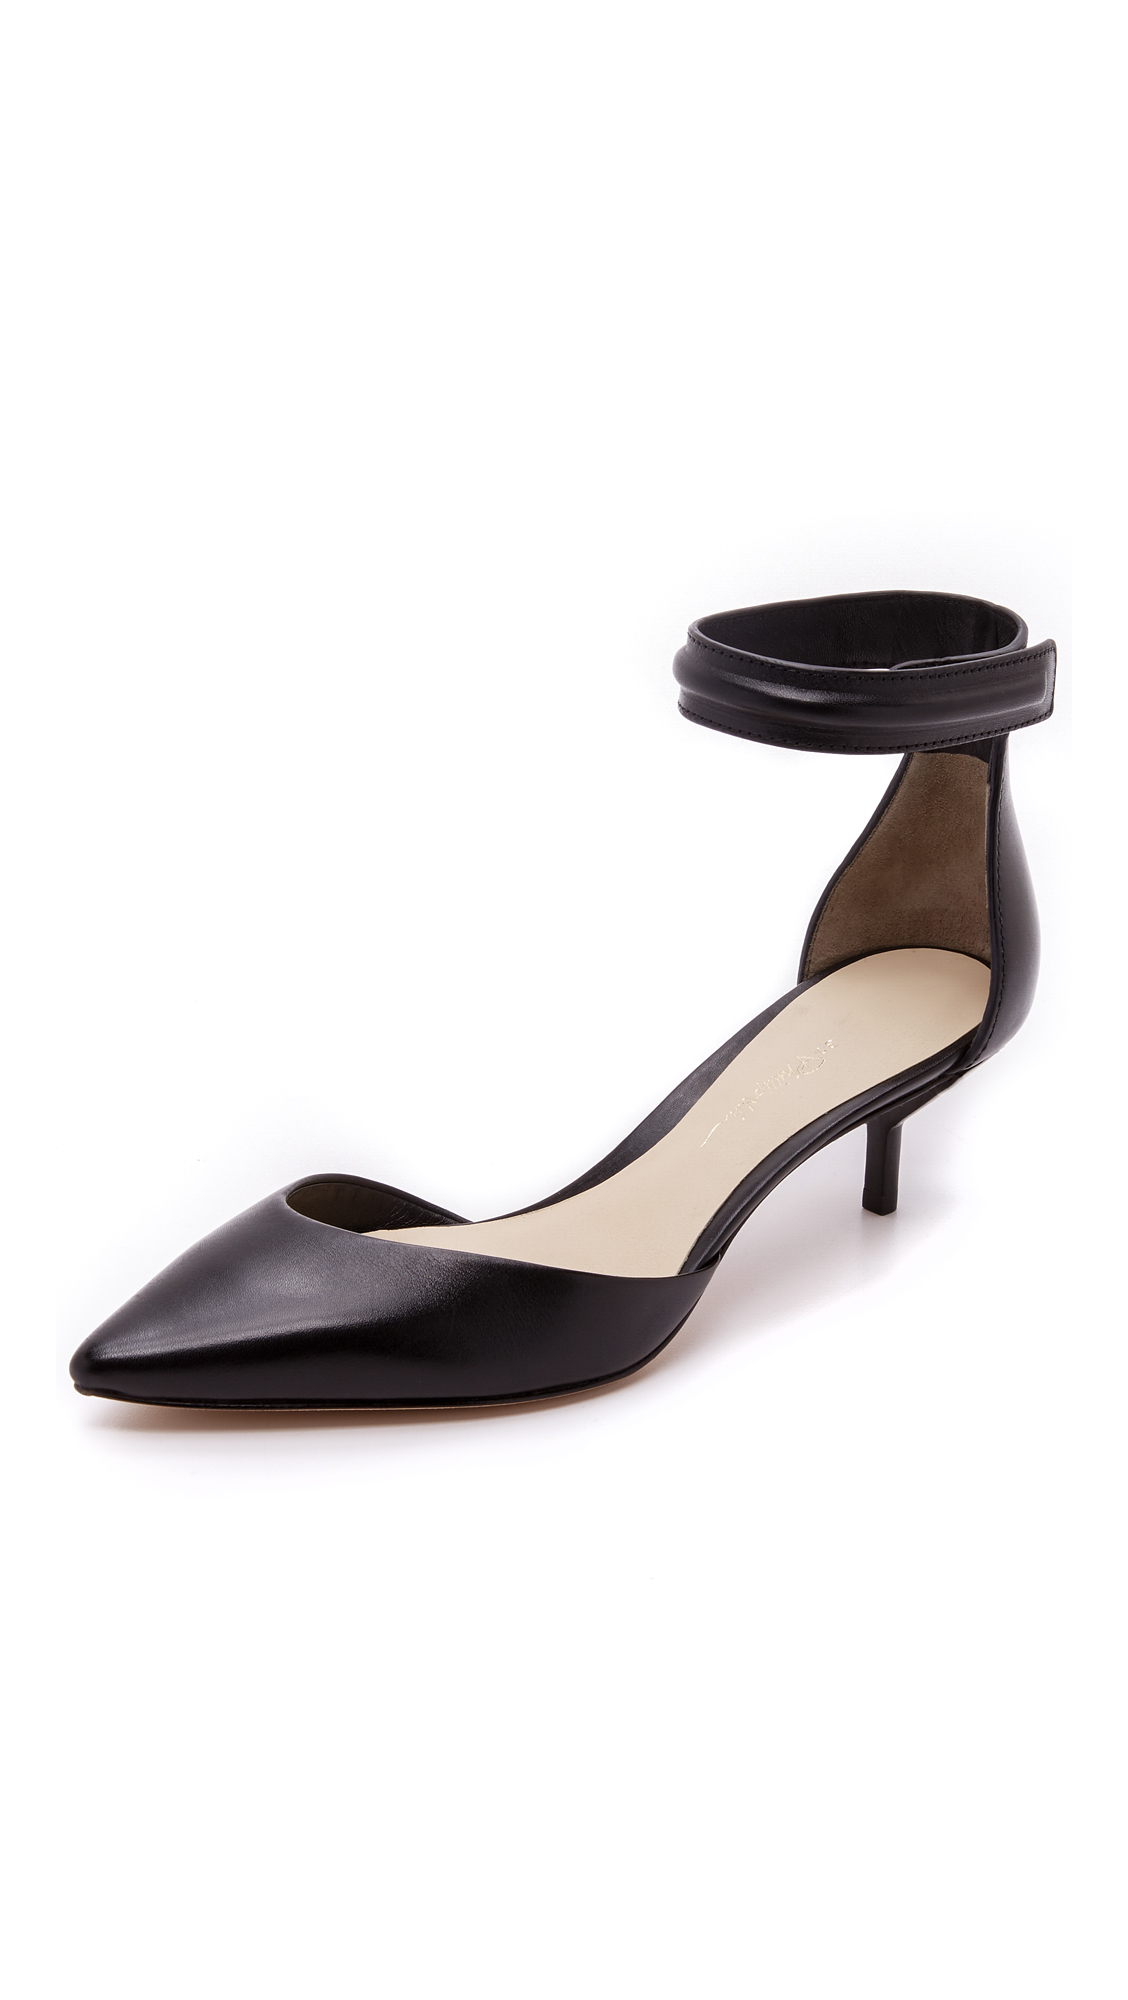 3.1 Phillip Lim Leather Pumps xud4EAia